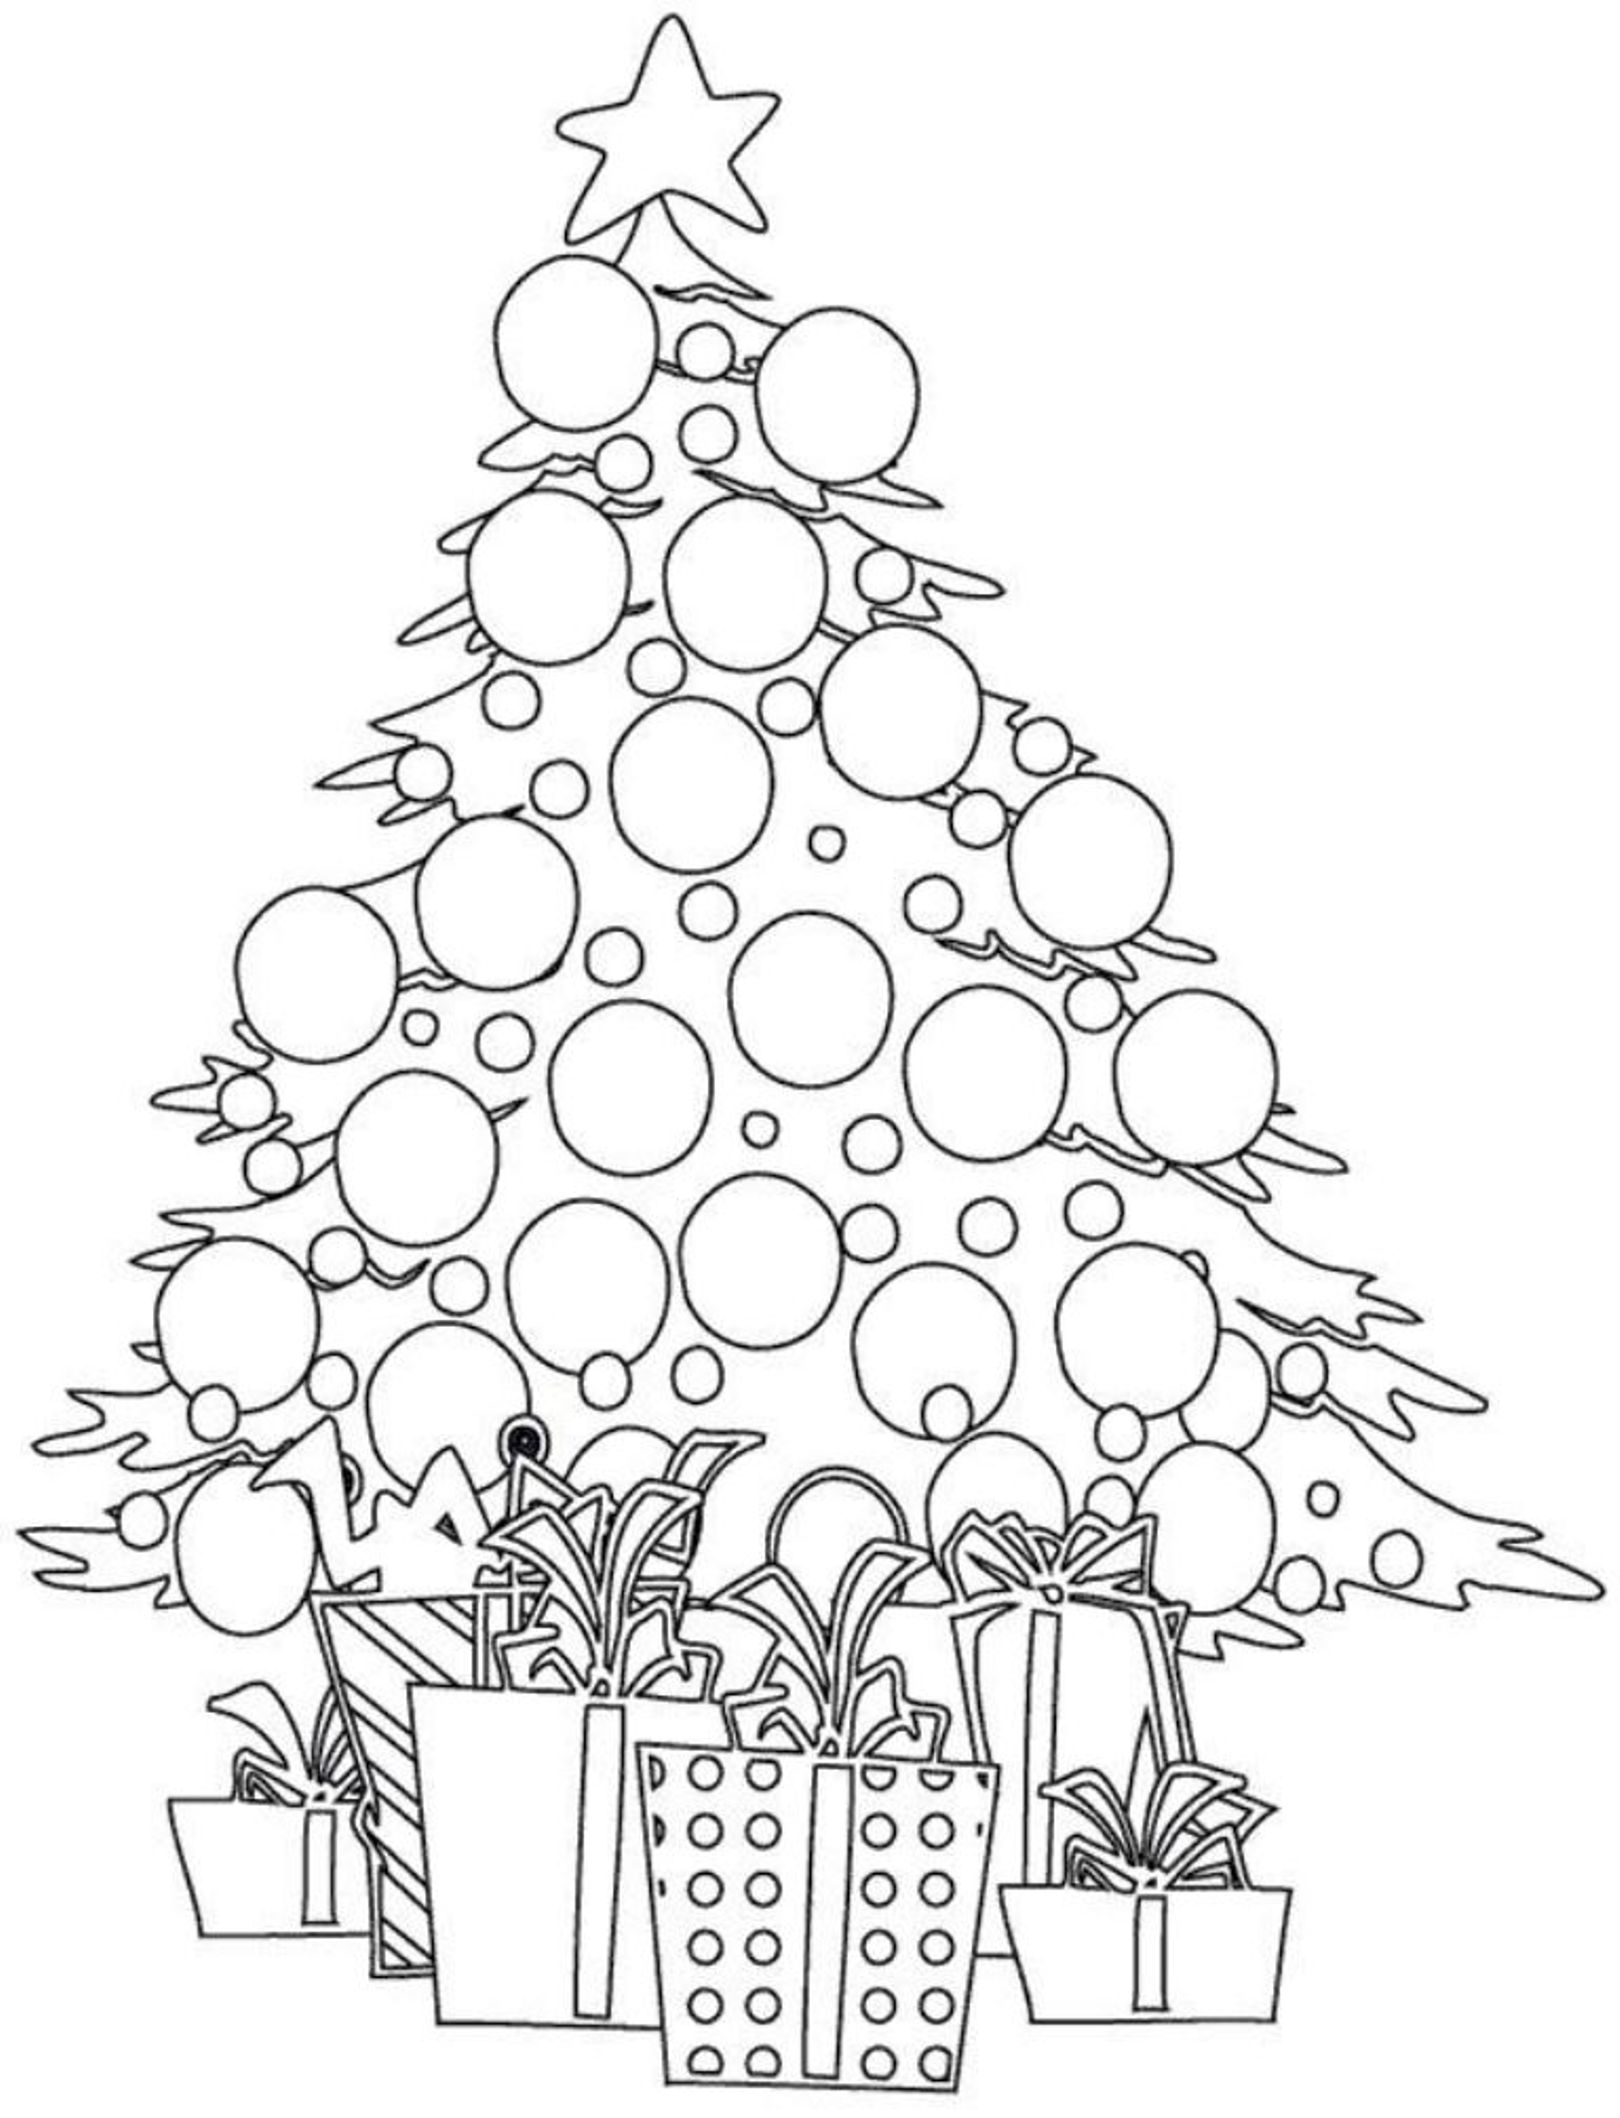 Colouring in xmas tree - Christmas Tree Balls Coloring Pages